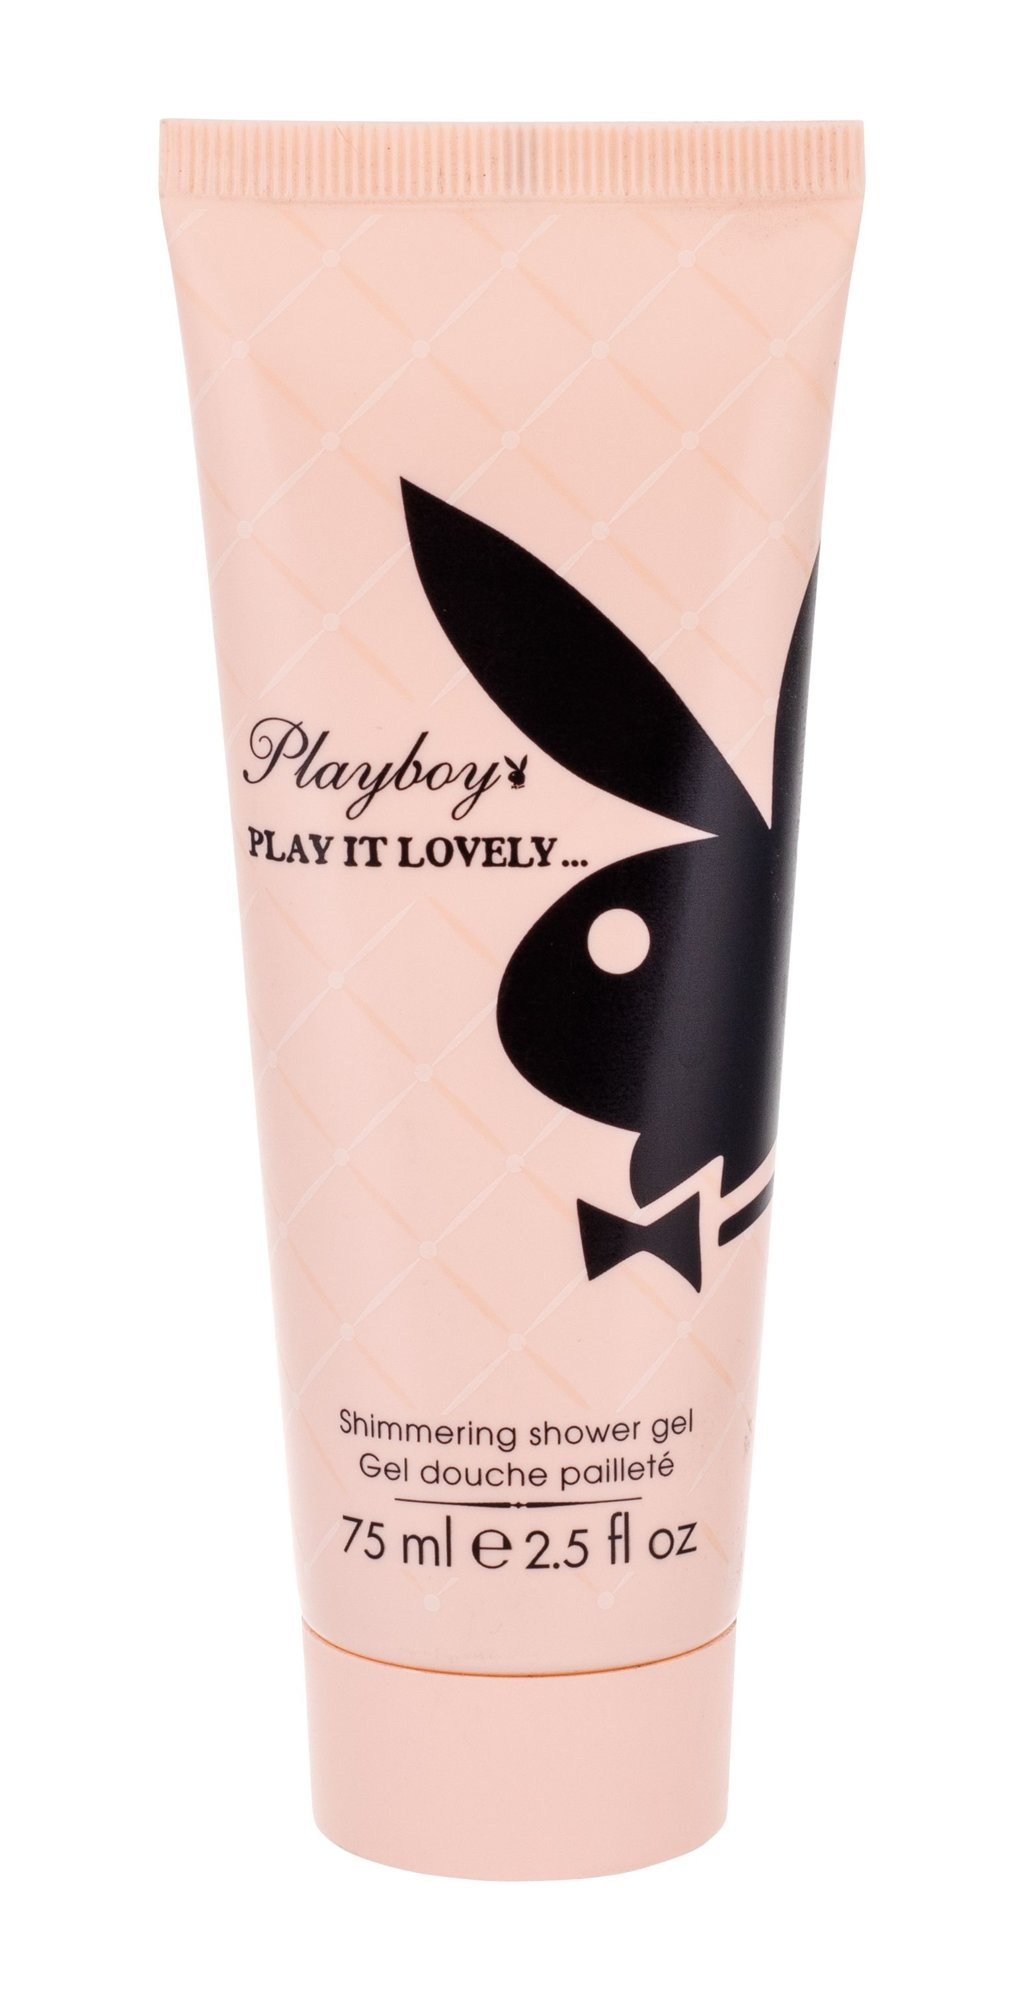 Playboy Play It Lovely For Her Shower gel 75ml